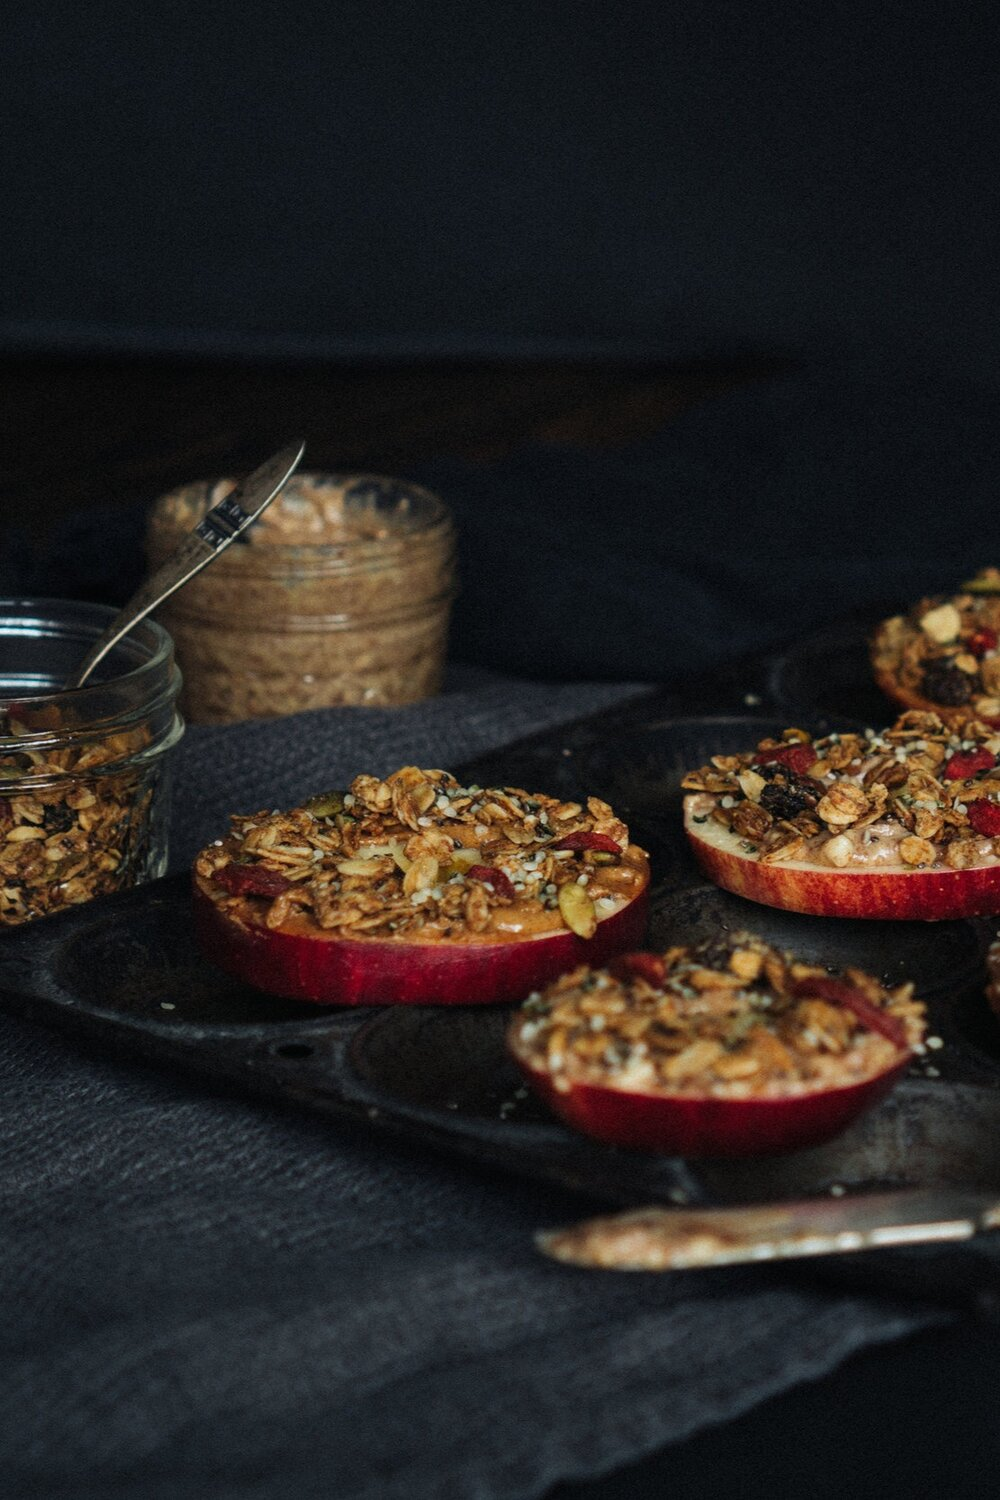 Apples_nut_butter_and_granola-3.jpg